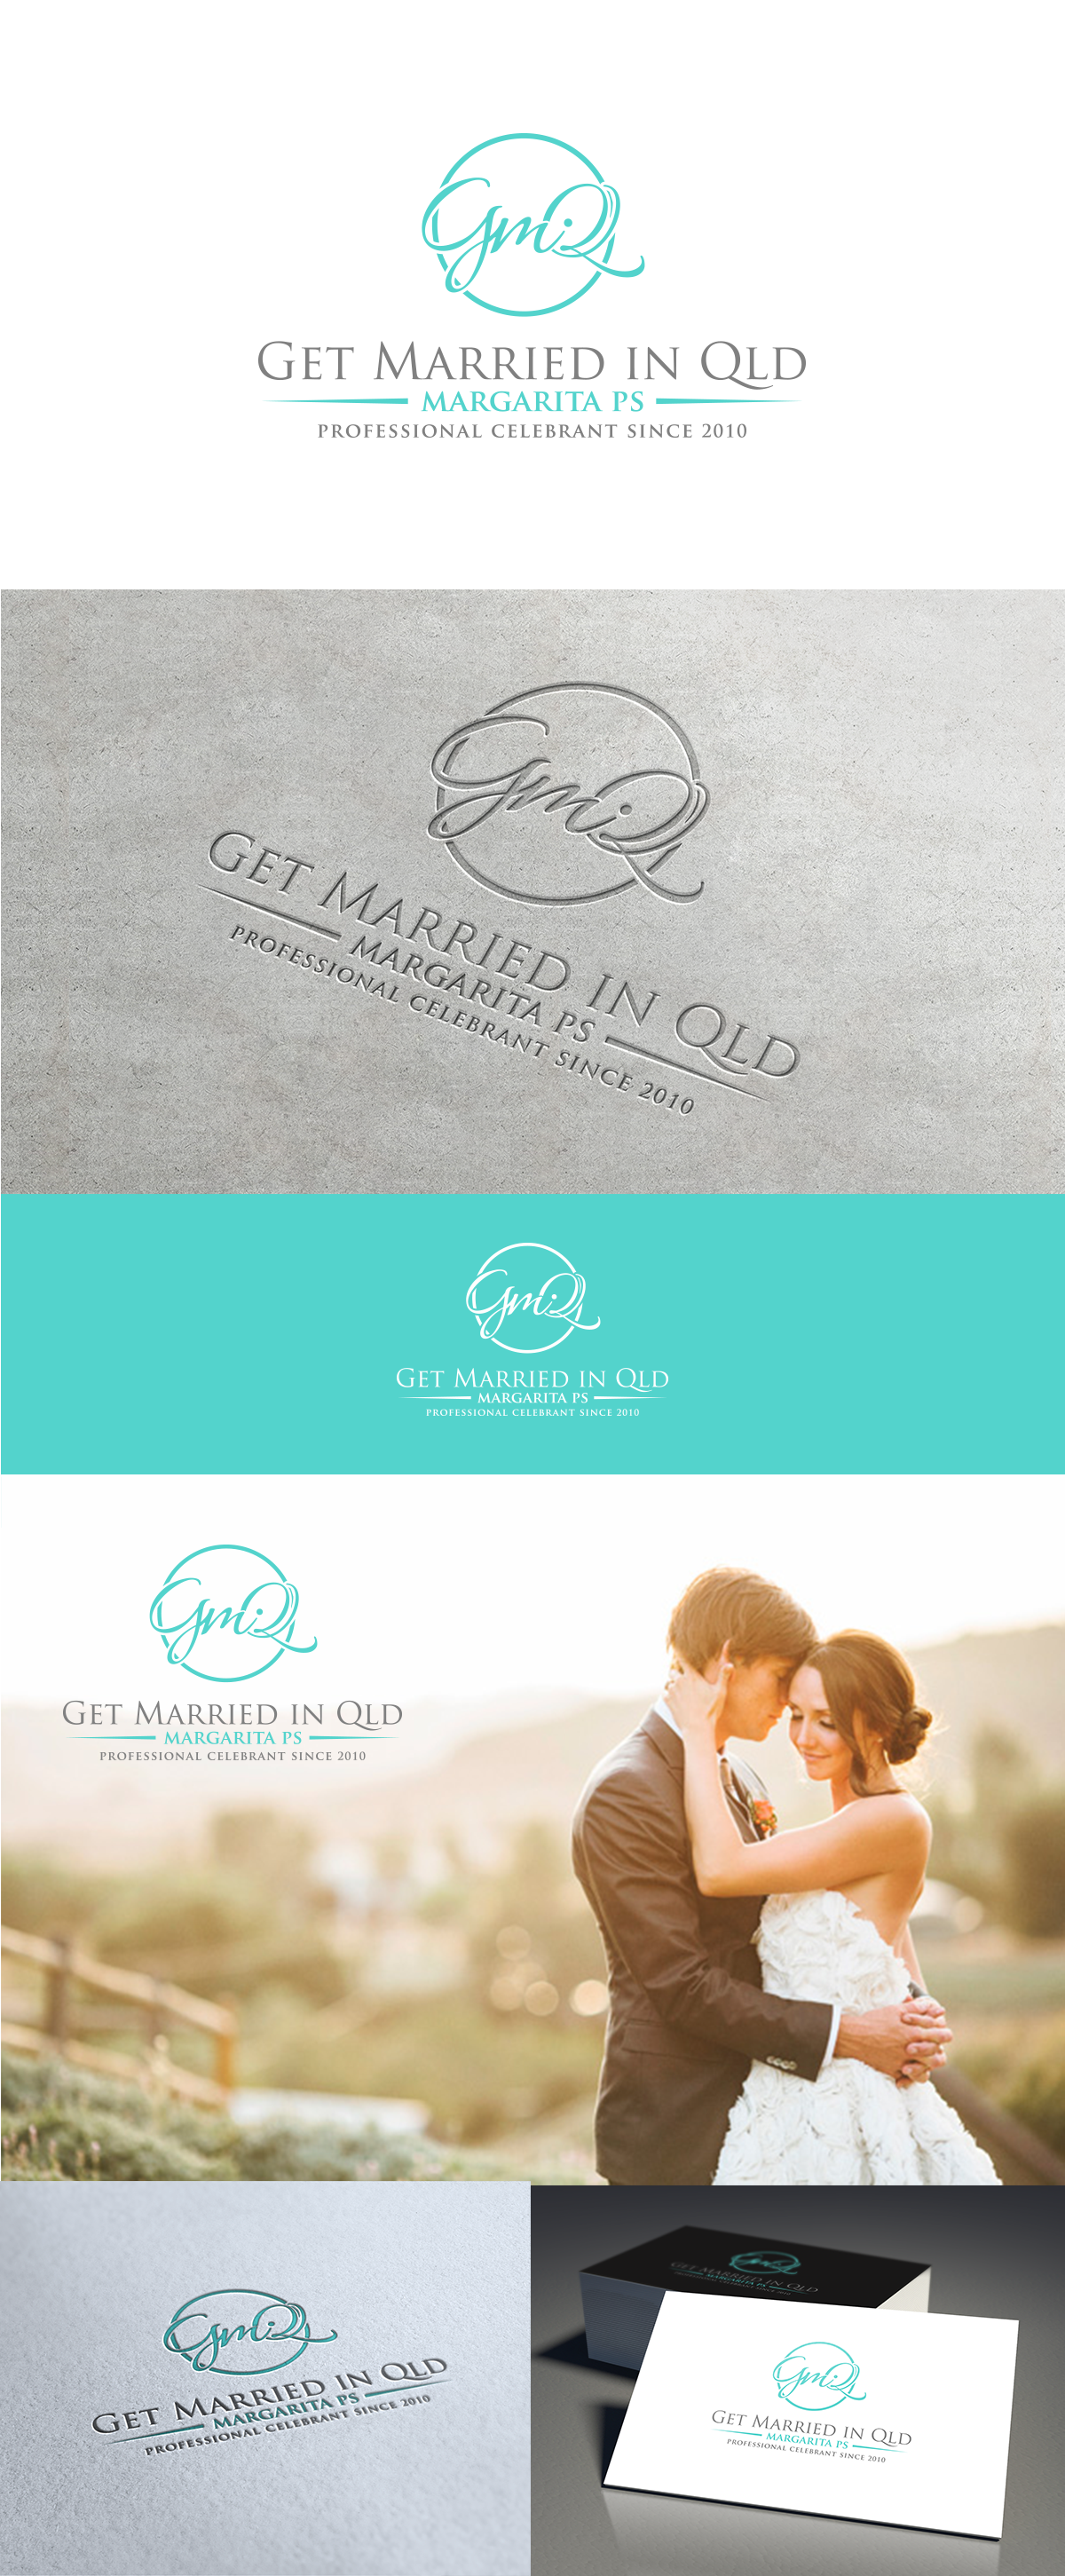 Create a Beautiful Monogram style logo to attract the most discerning Bride to be.